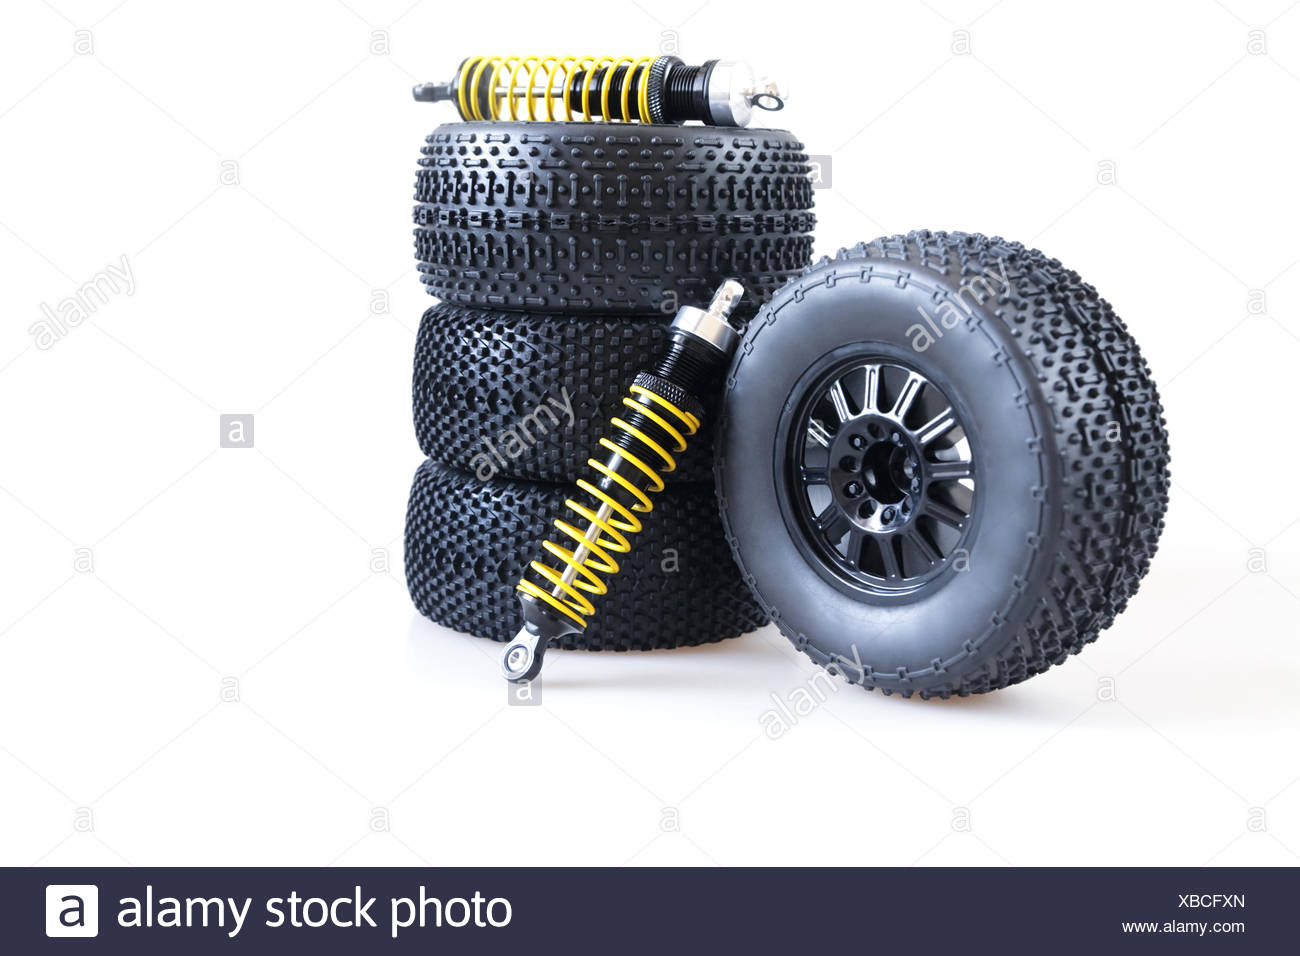 wheels and shock absorbers on a white background - Stock Image